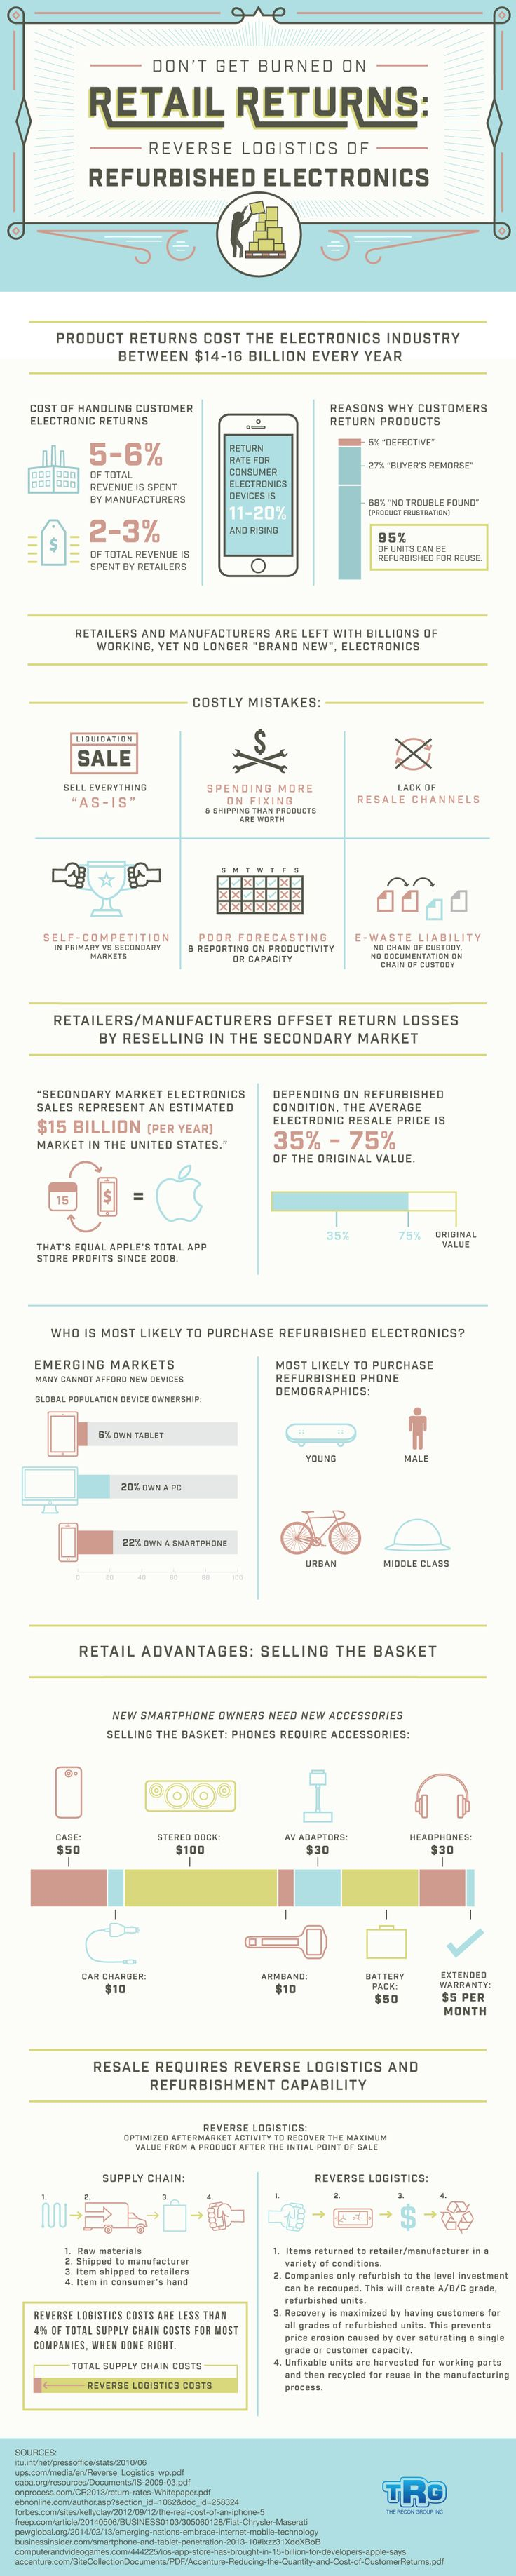 Reverse Logistics of Refurbished Electronics [Infographic]